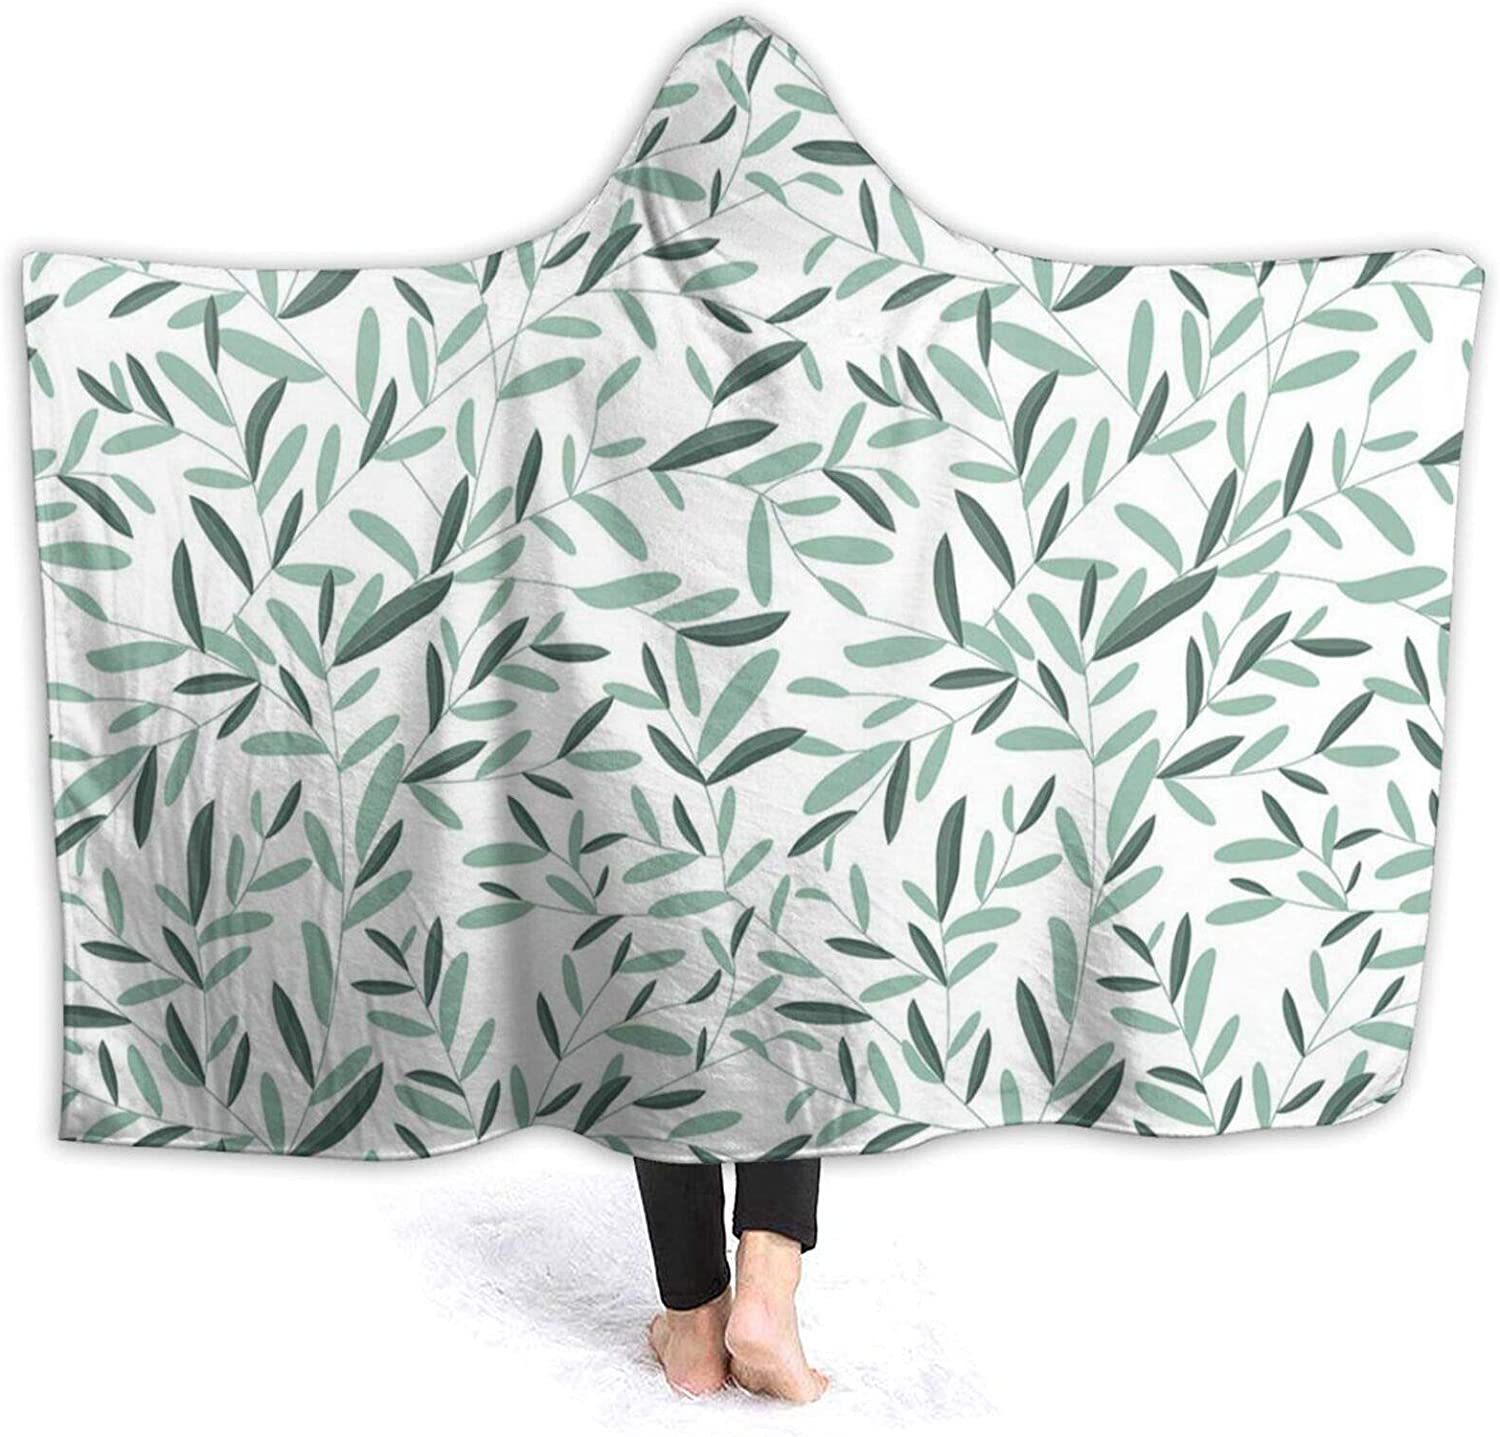 Hooded Blanket Anti-Pilling Flannel Pattern with Leaves Environm Bombing new work free